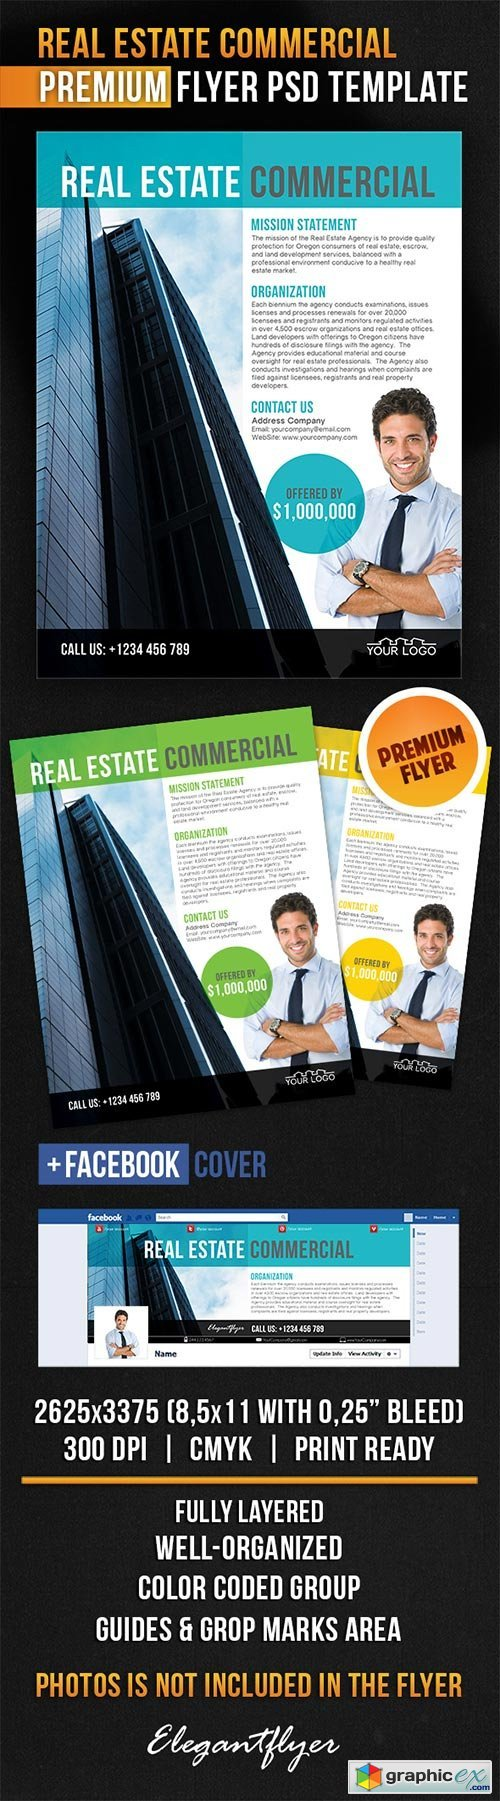 Real Estate Commercial Flyer PSD Template + Facebook Cover